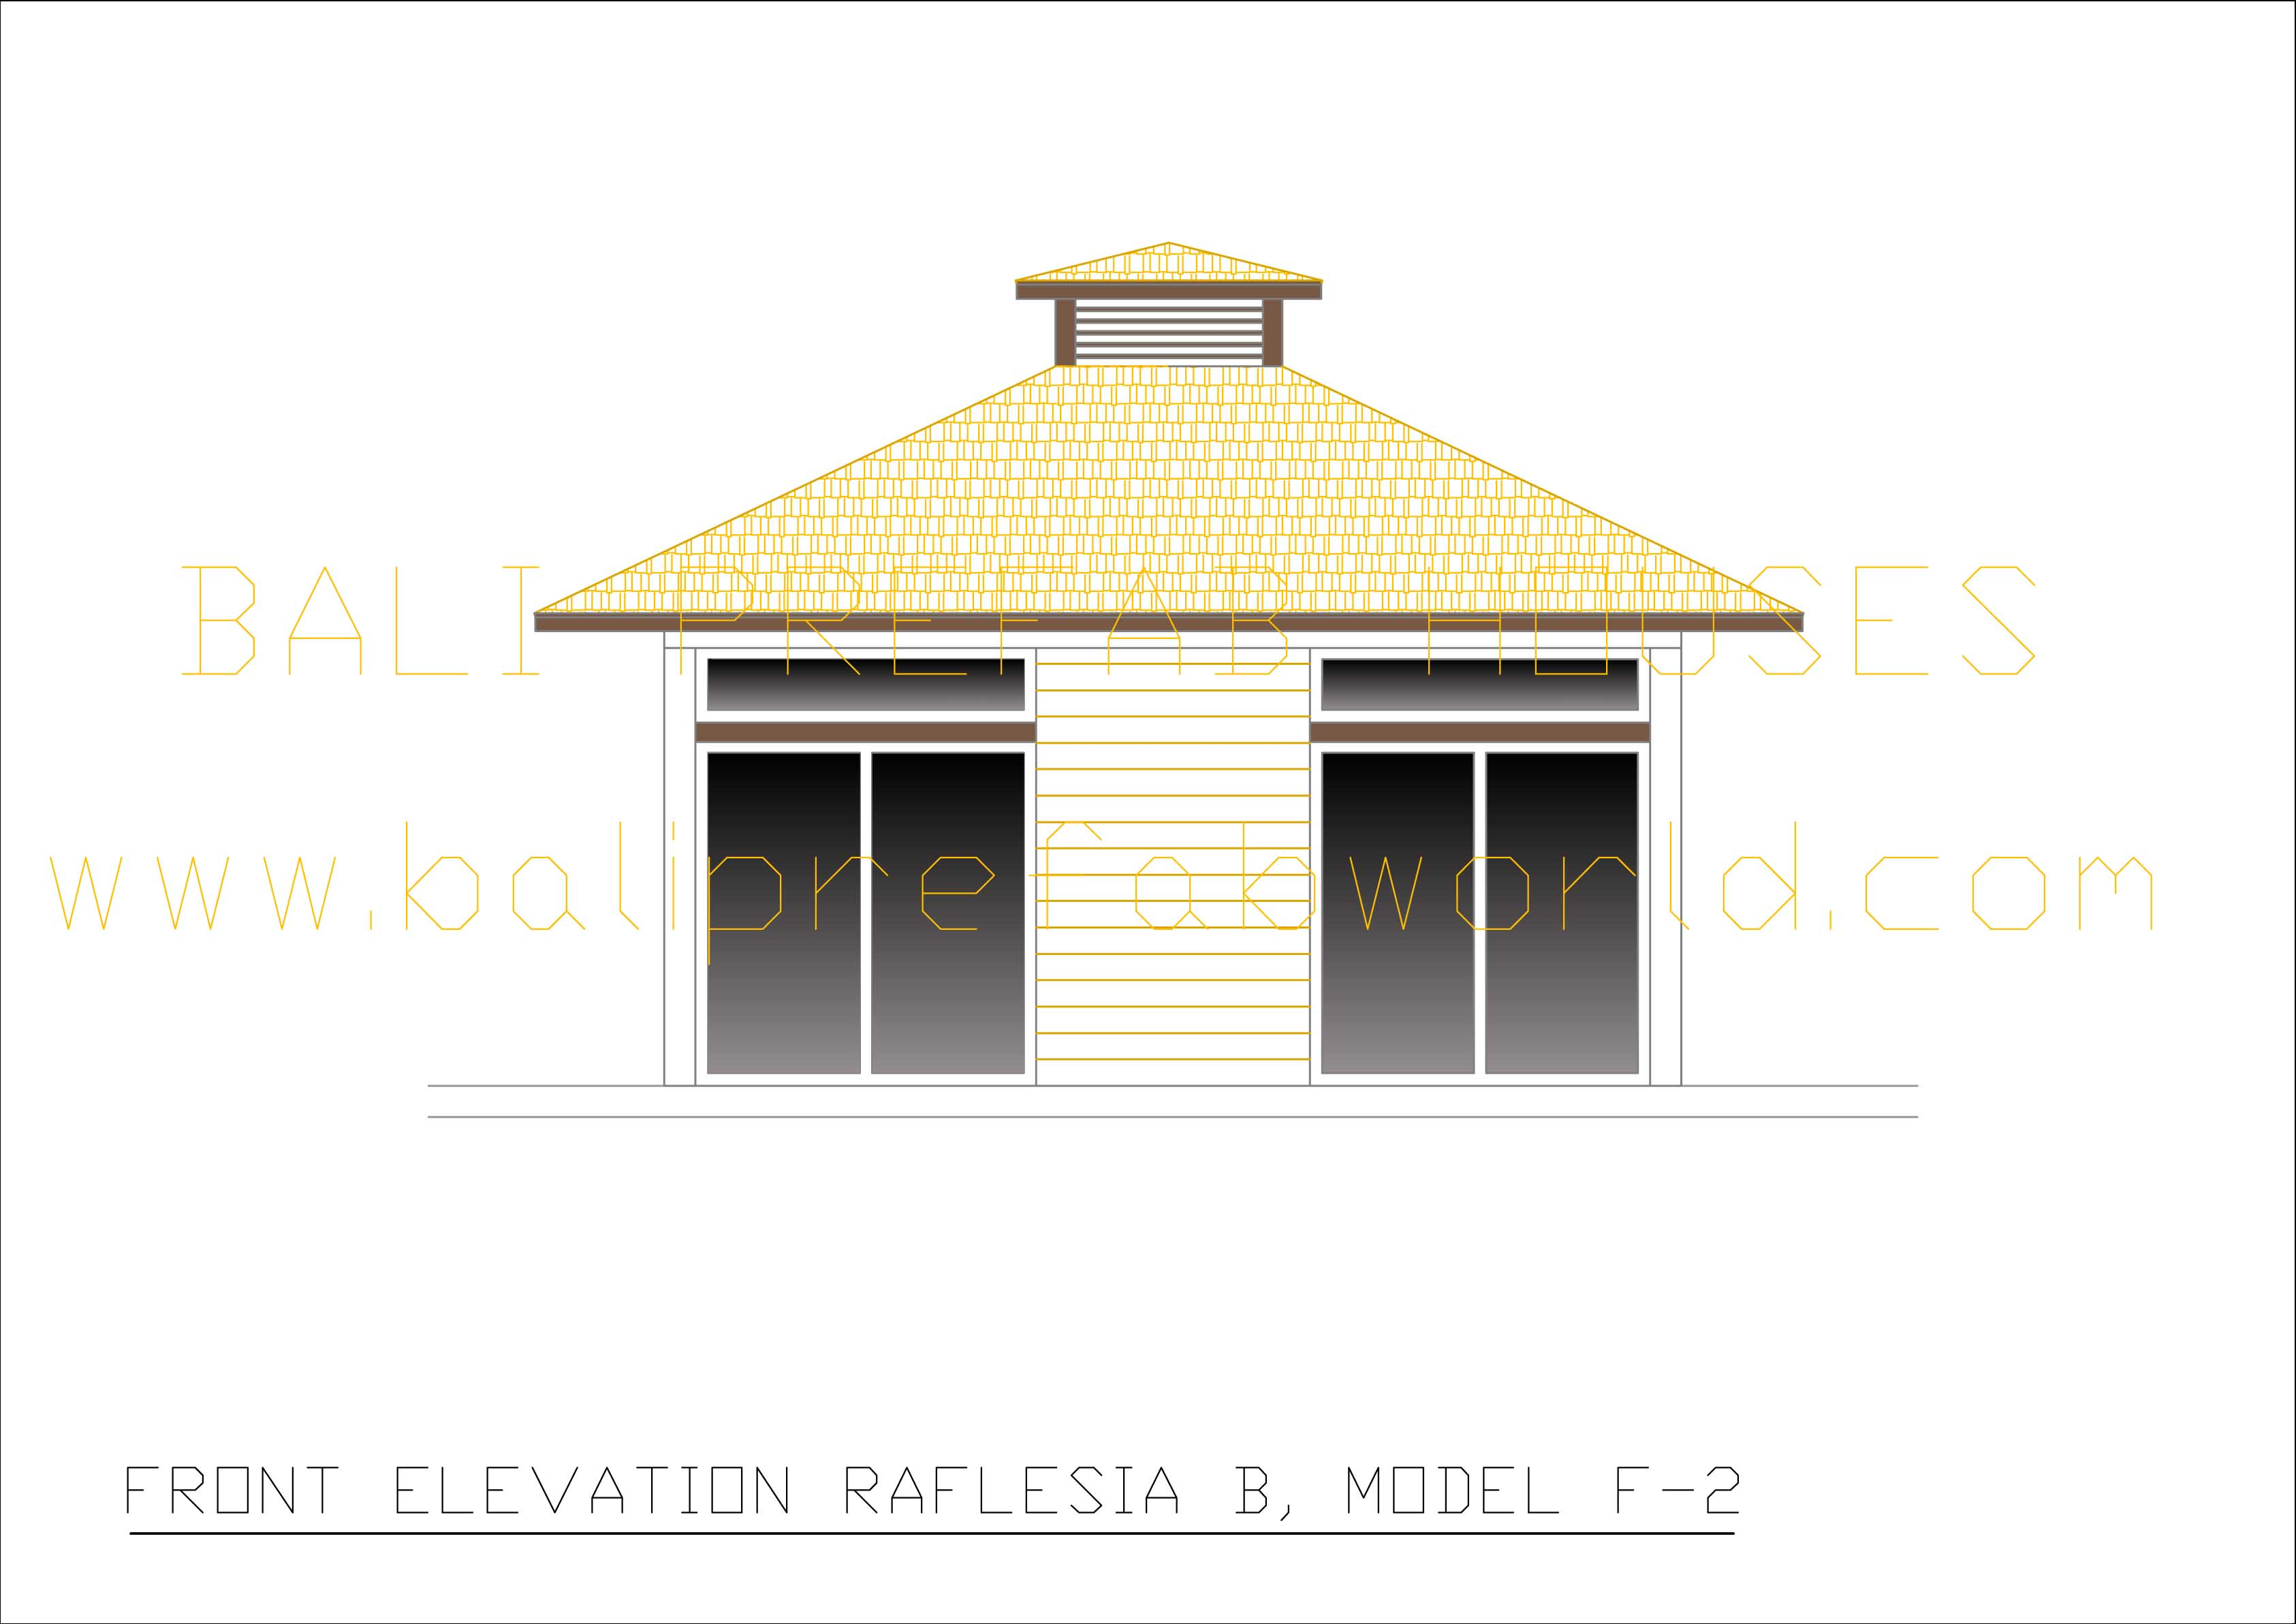 Raflesia-B front elevation